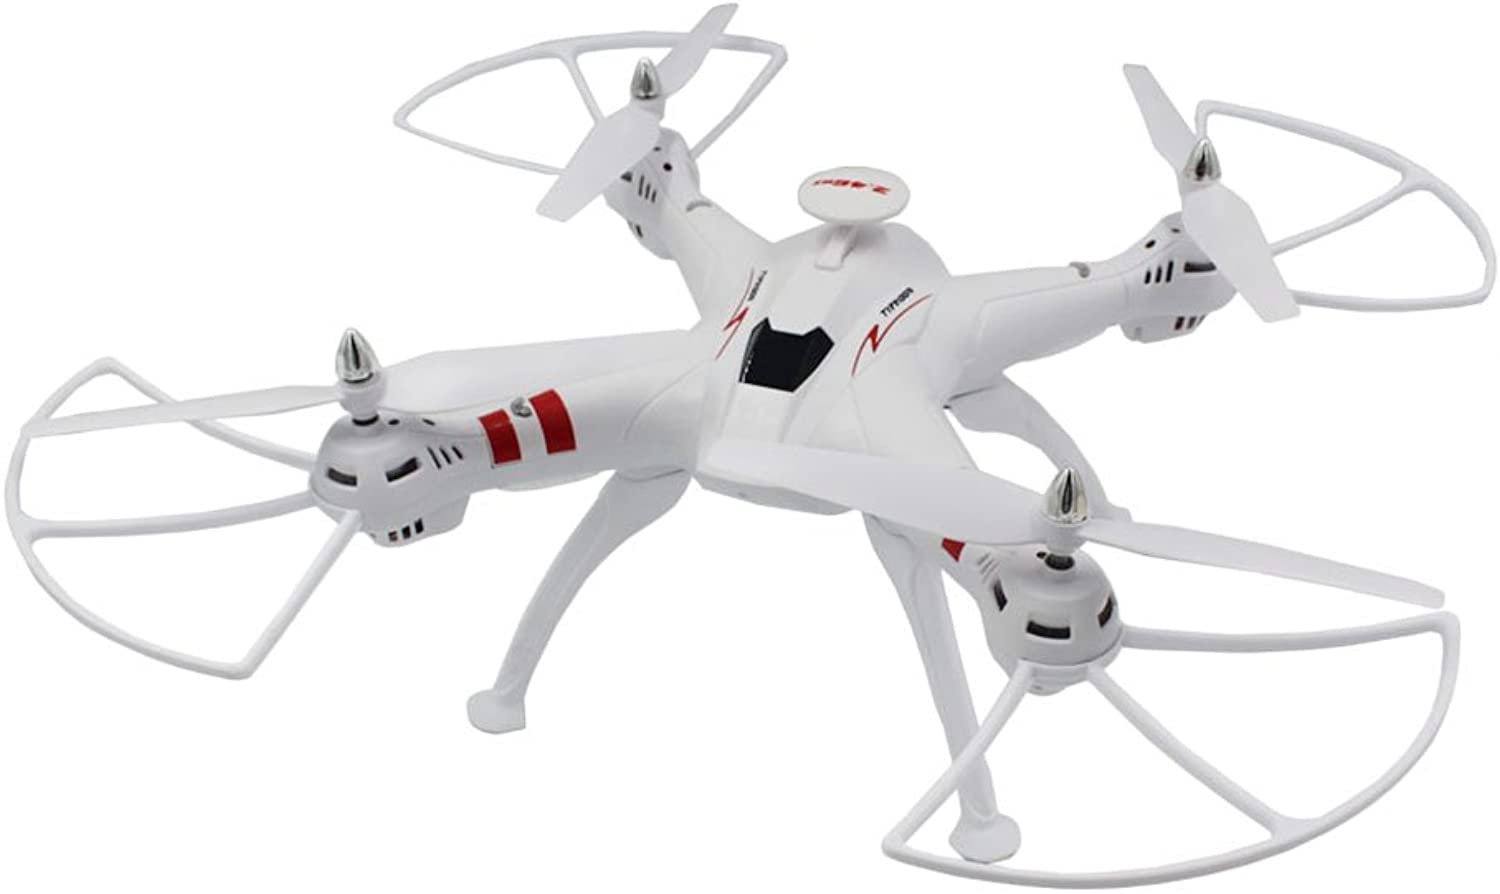 Wlgreatsp Drone Without Camera With Long Flying Time,500 Meters Remote Control Distance,RC Quadcopter With Altitude Hold